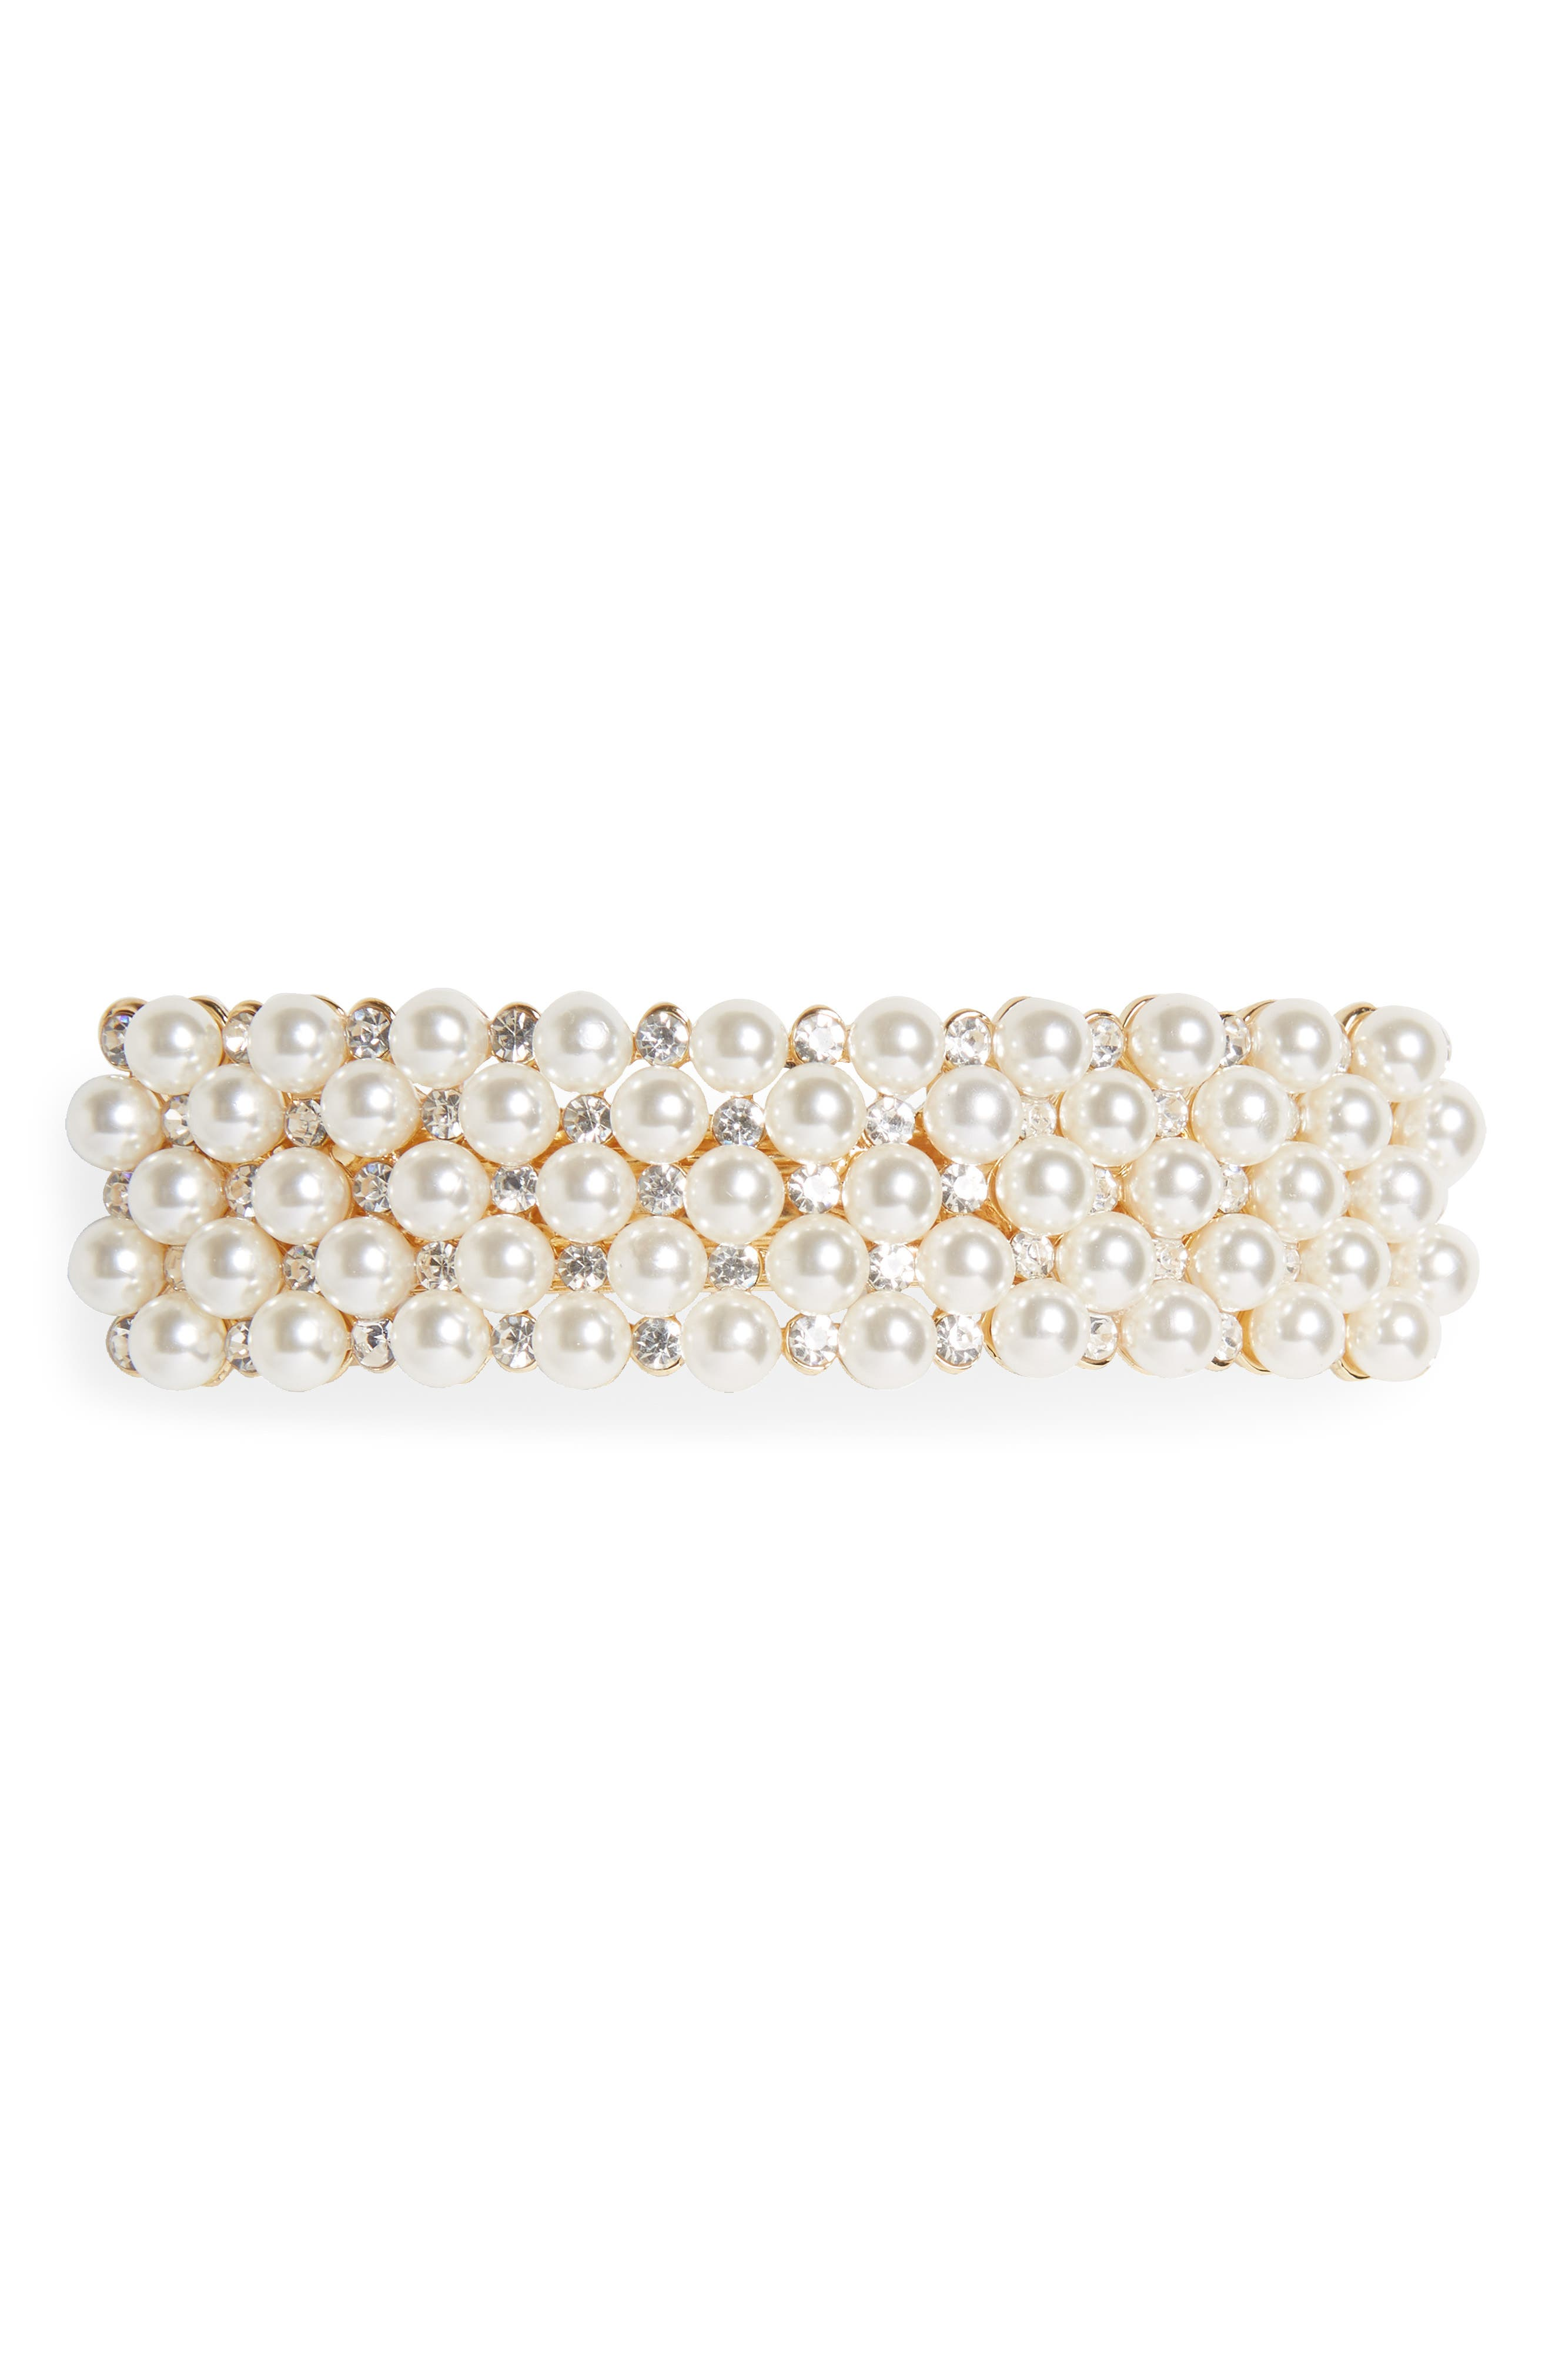 TASHA, Crystal & Imitation Pearl Embellished Barrette, Main thumbnail 1, color, 710